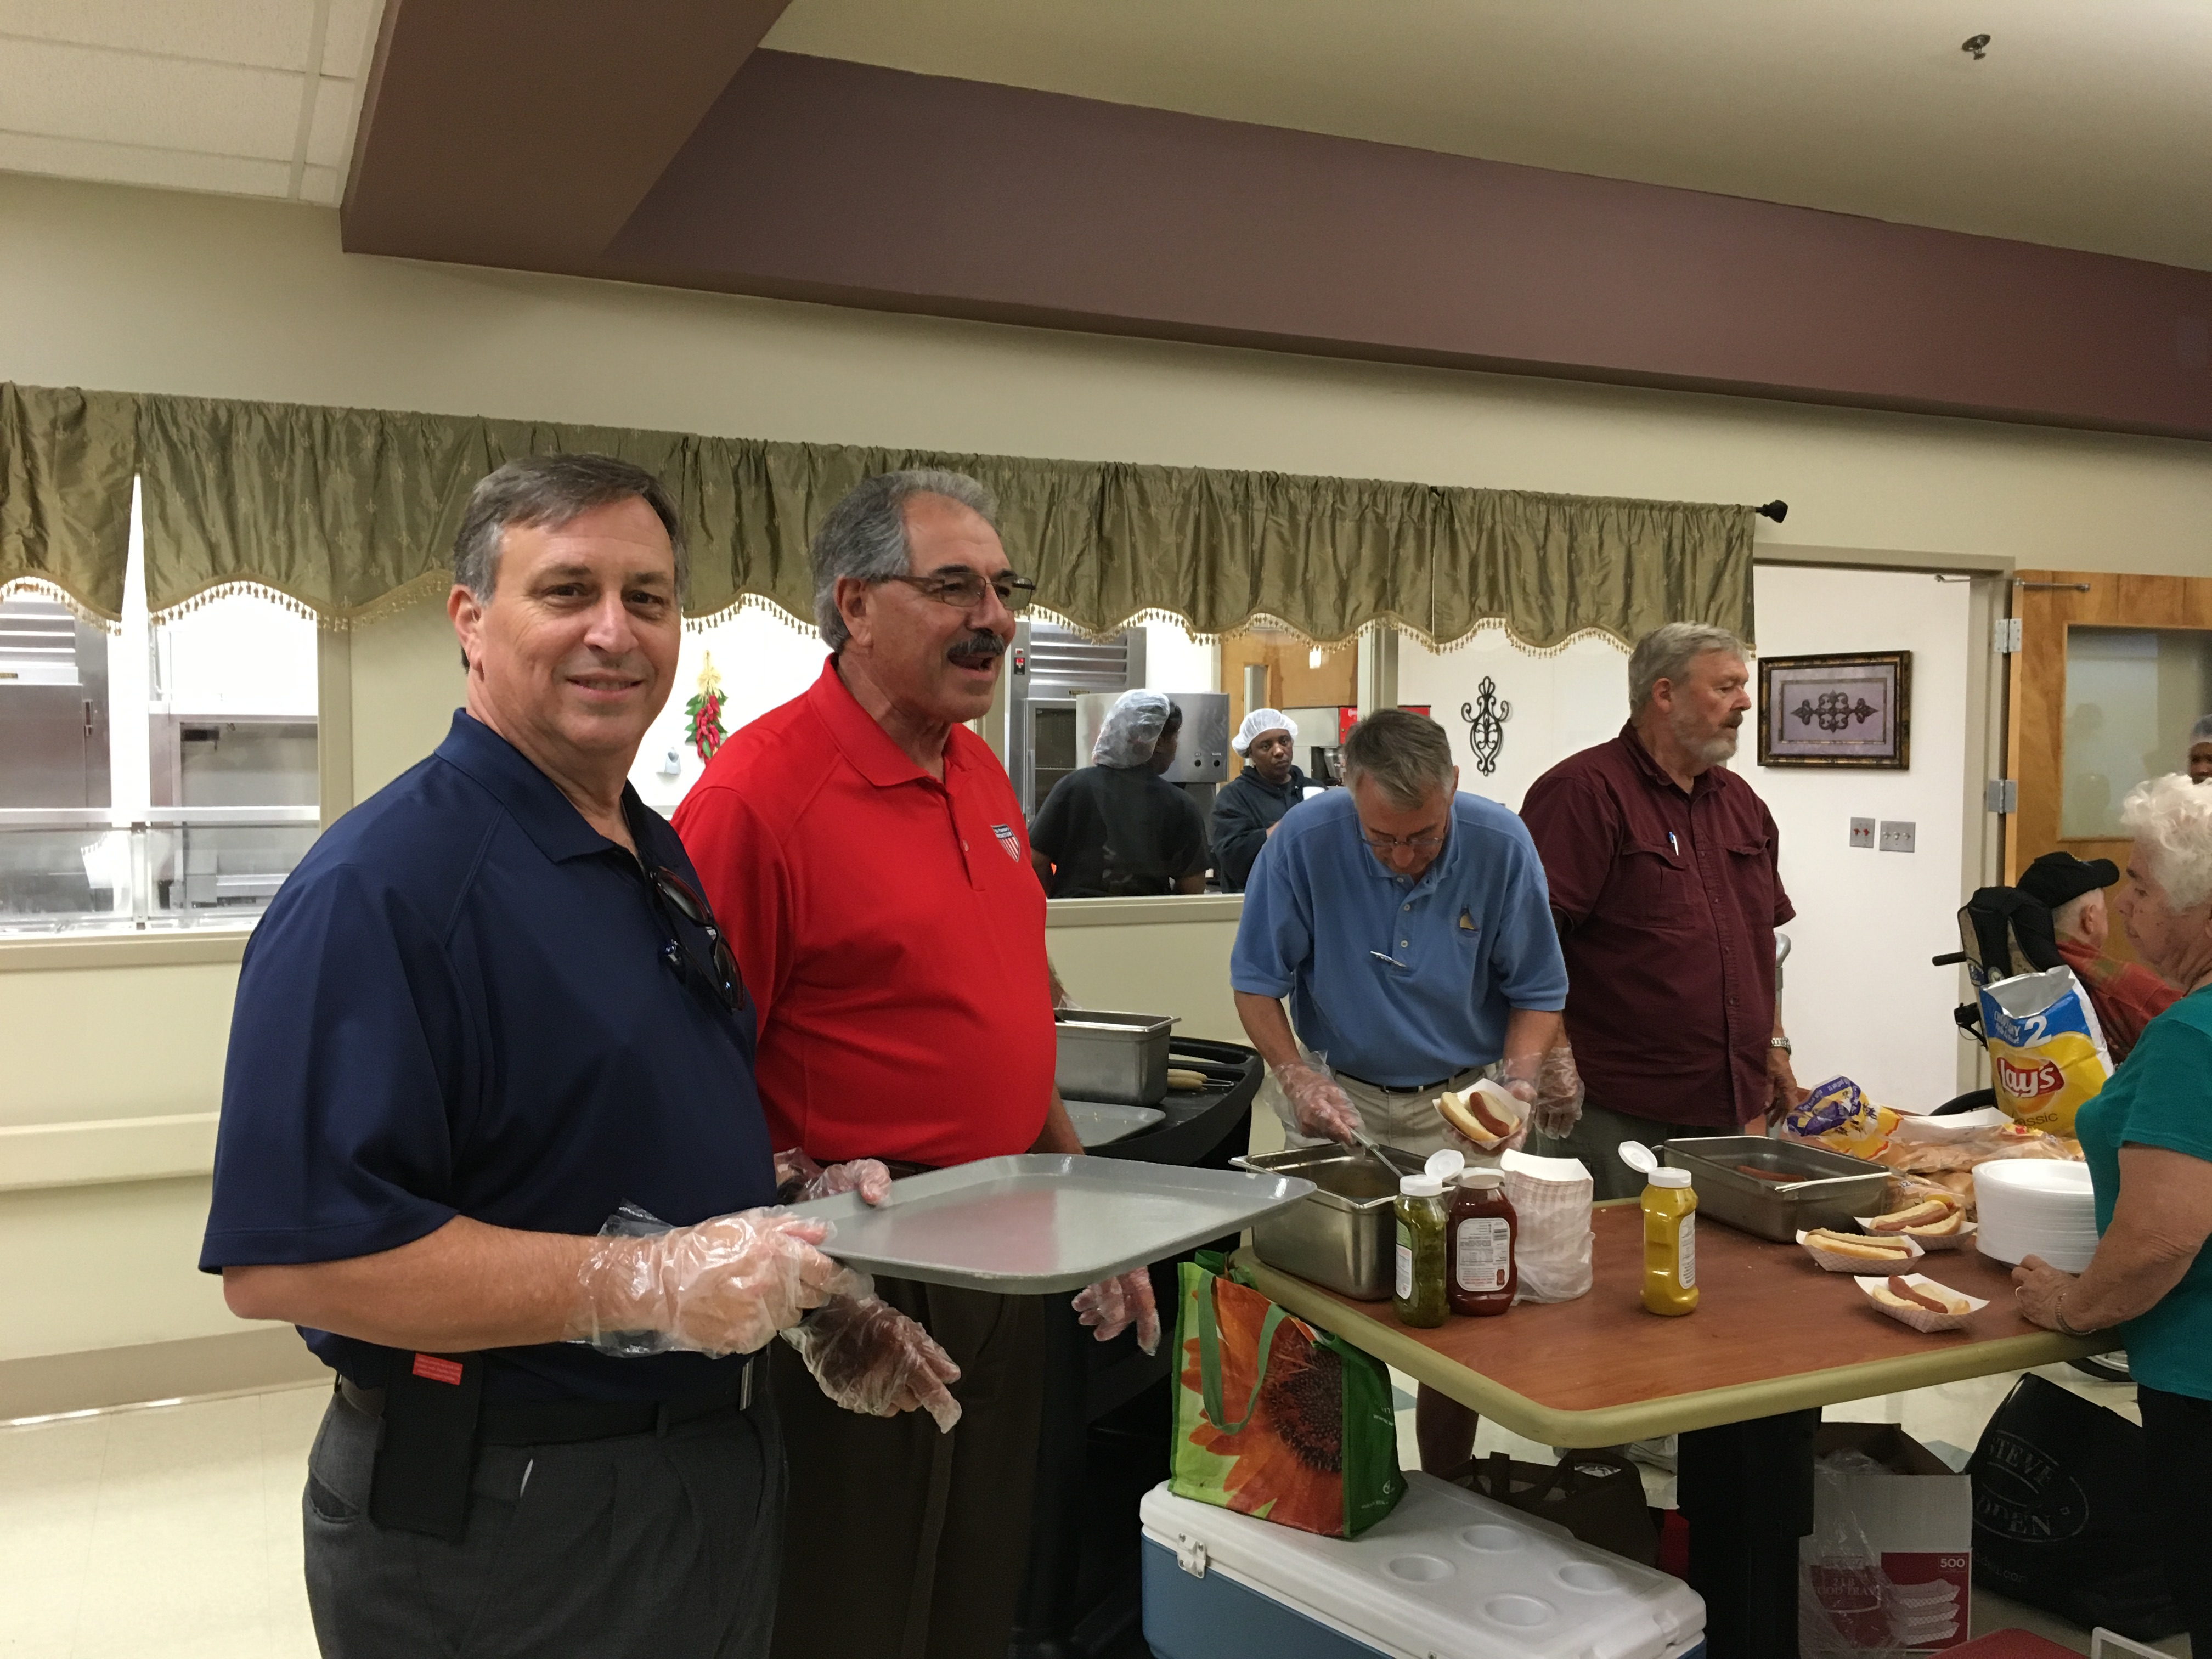 10.2015 - SELAWVH Hot Dog Social 2 of 3